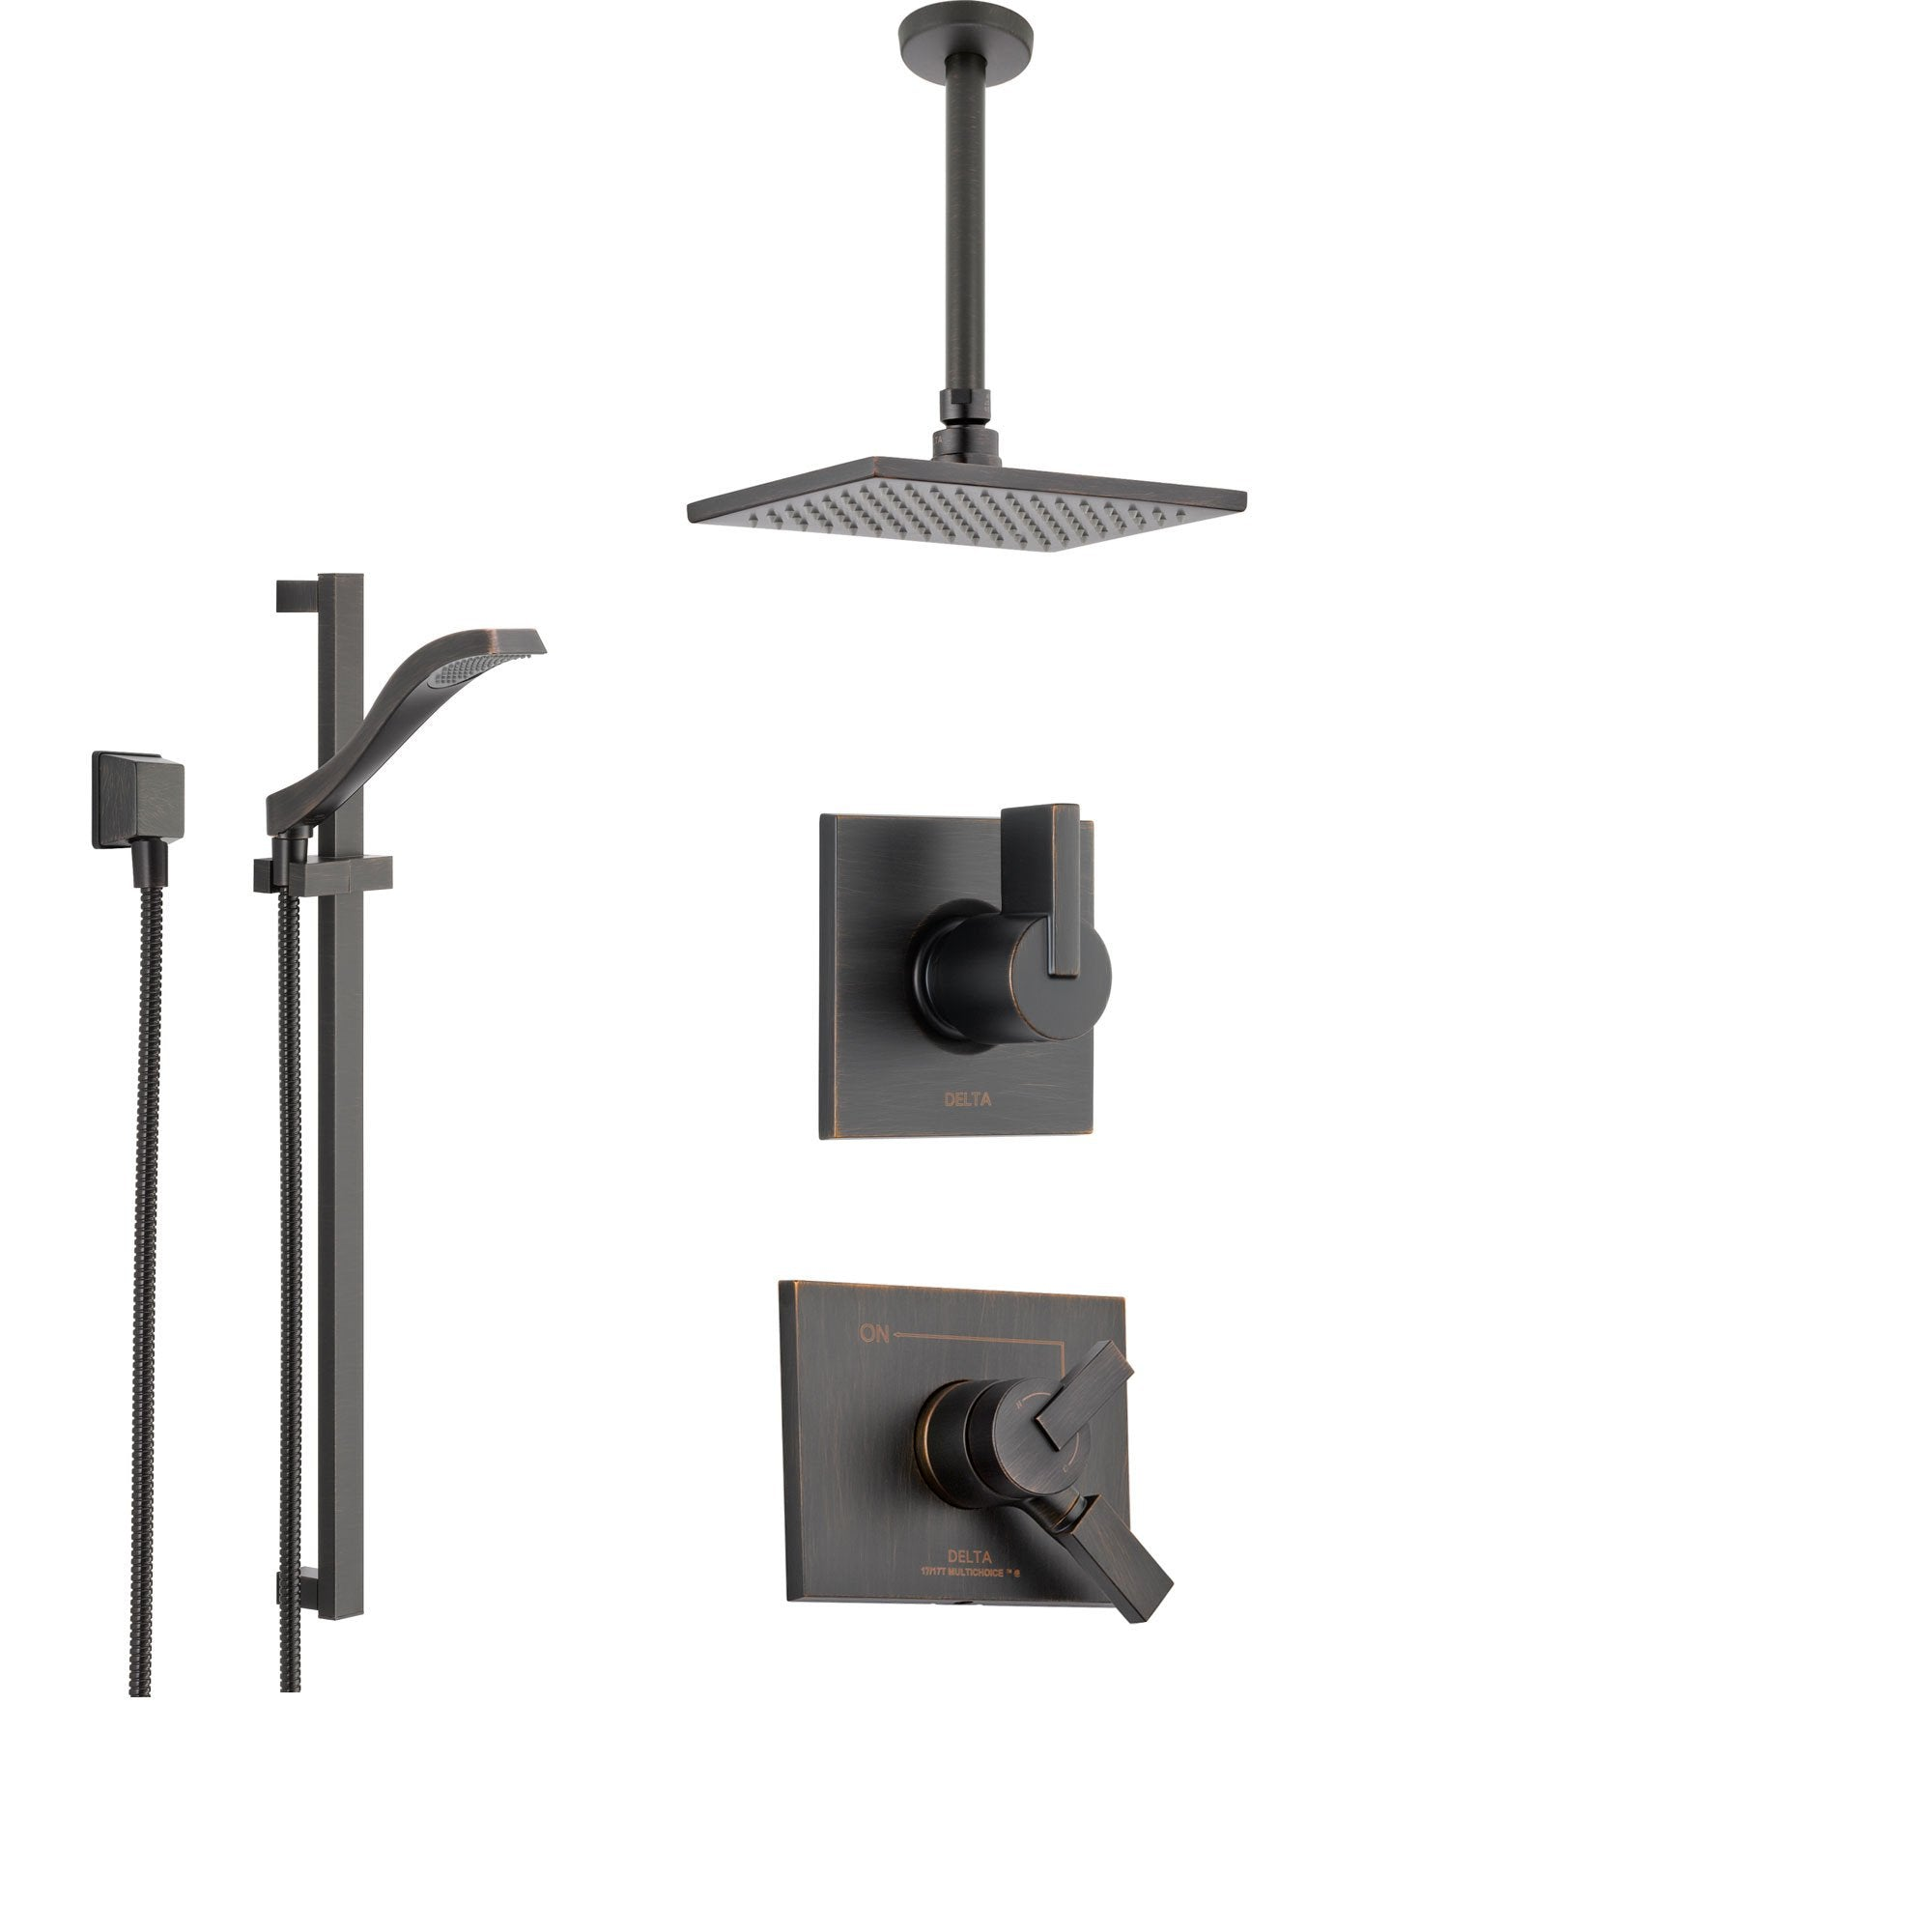 Delta Vero Venetian Bronze Shower System with Dual Control Shower Handle, 3-setting Diverter, Modern Square Ceiling Mount Rain Showerhead, and Handheld Shower SS175383RB